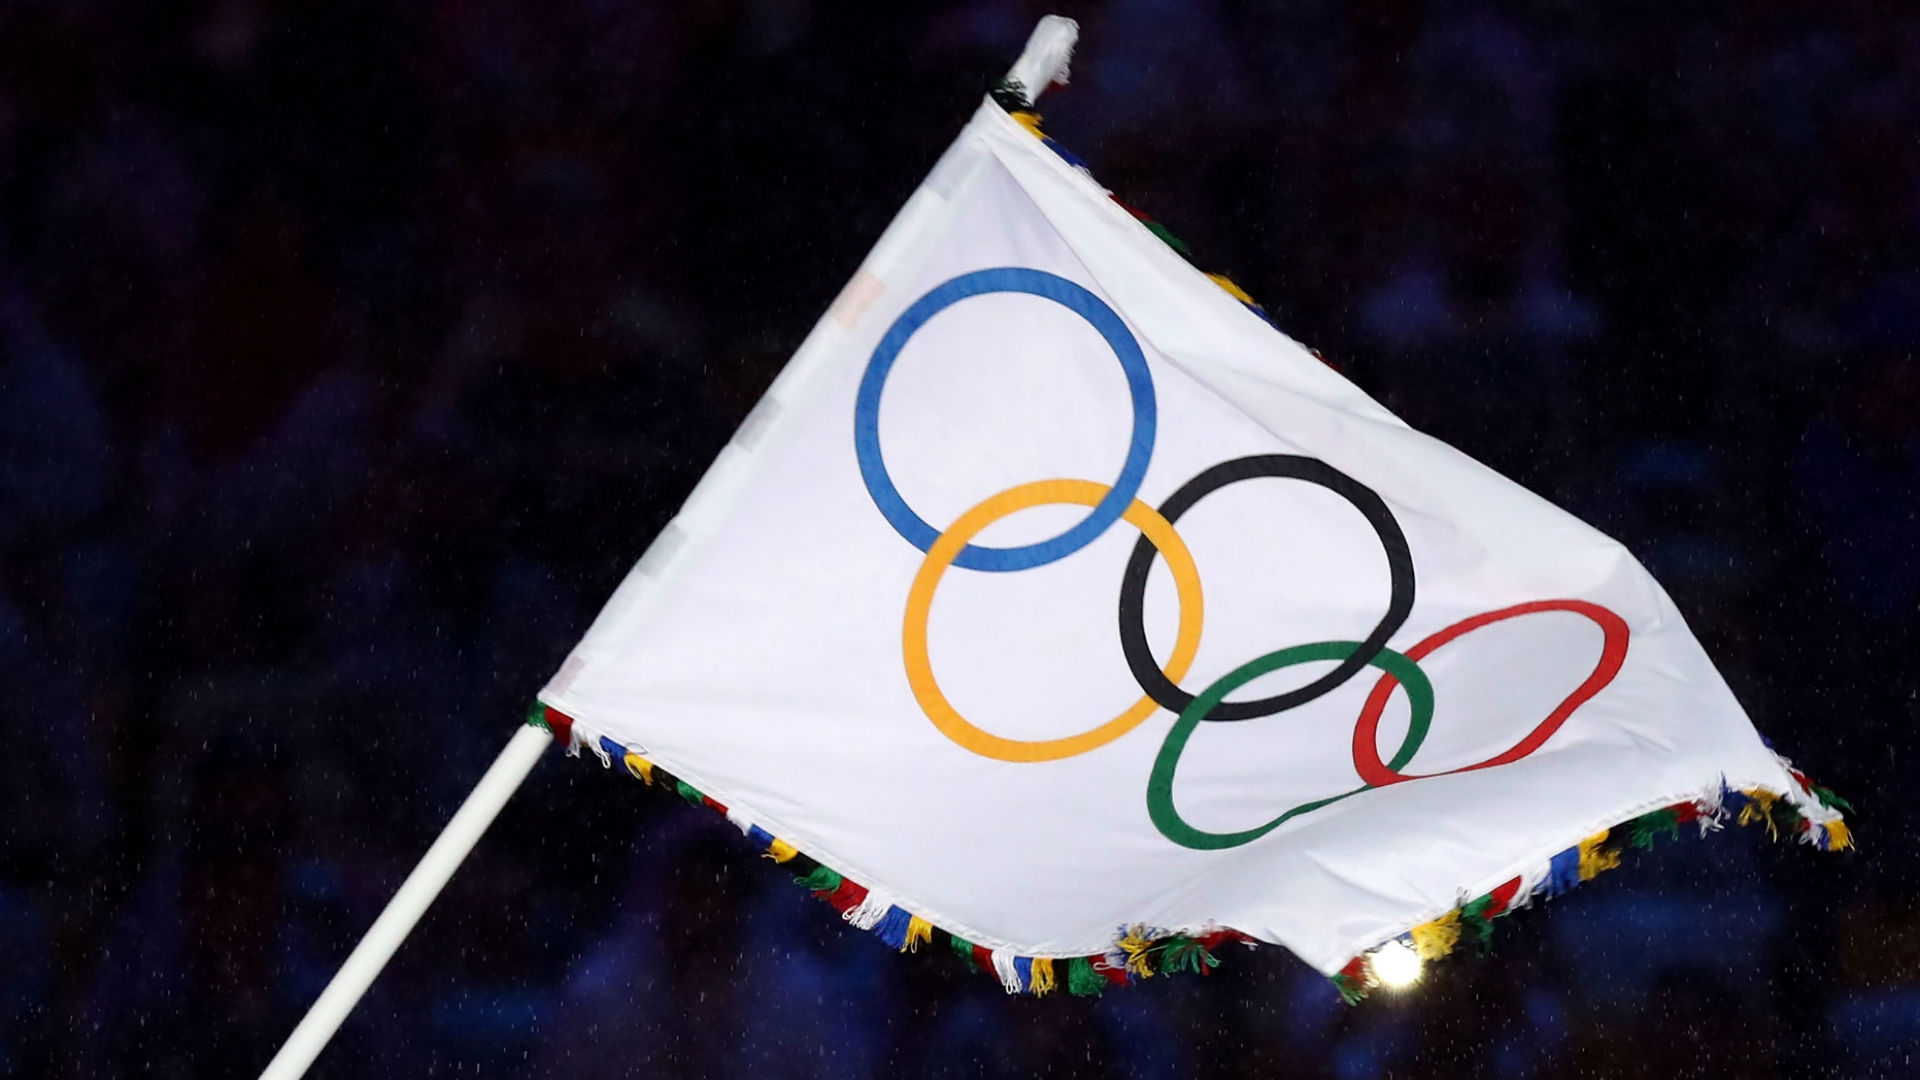 Olympics: LA may lose out to Paris, but get 2028 games instead